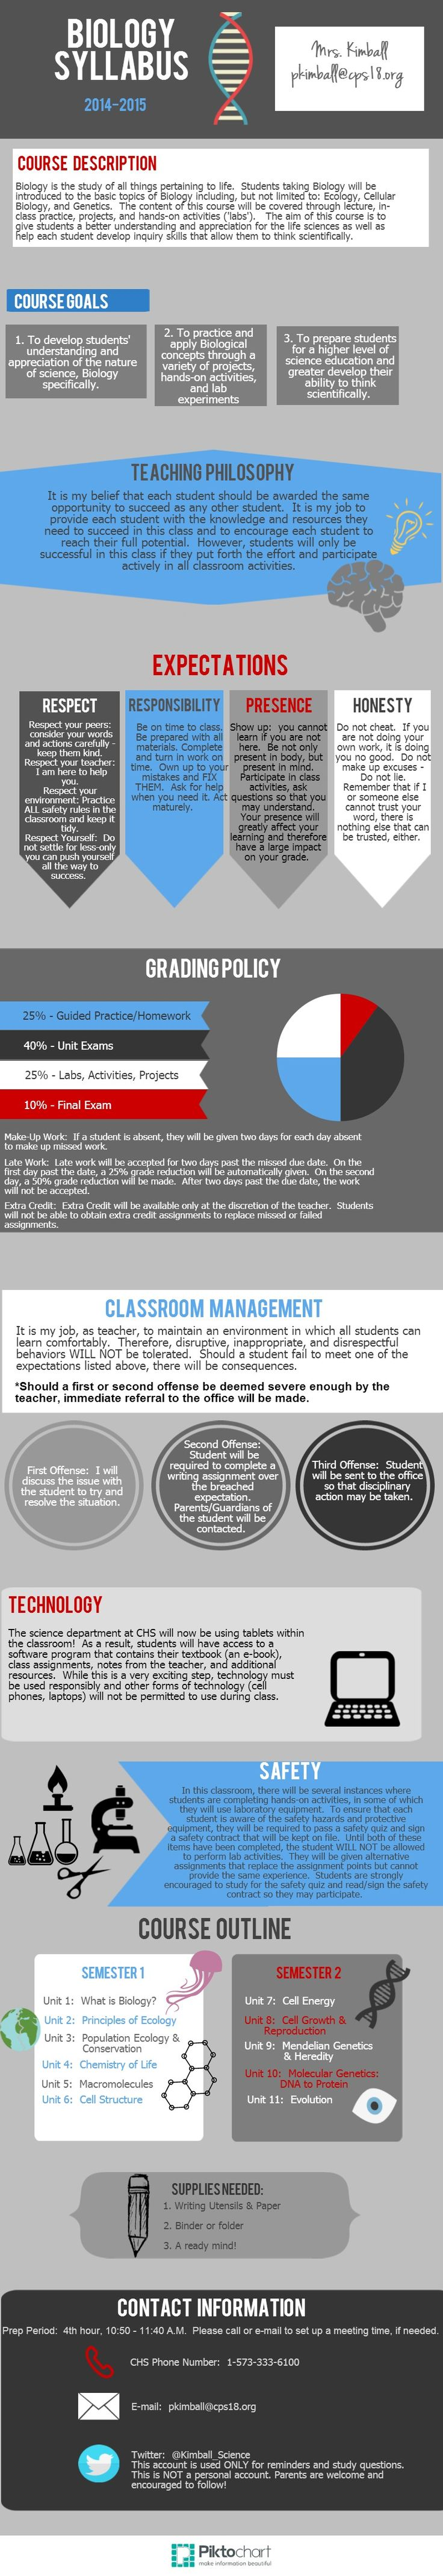 2014-2015 Biology Syllabus | Piktochart Infographic Editor